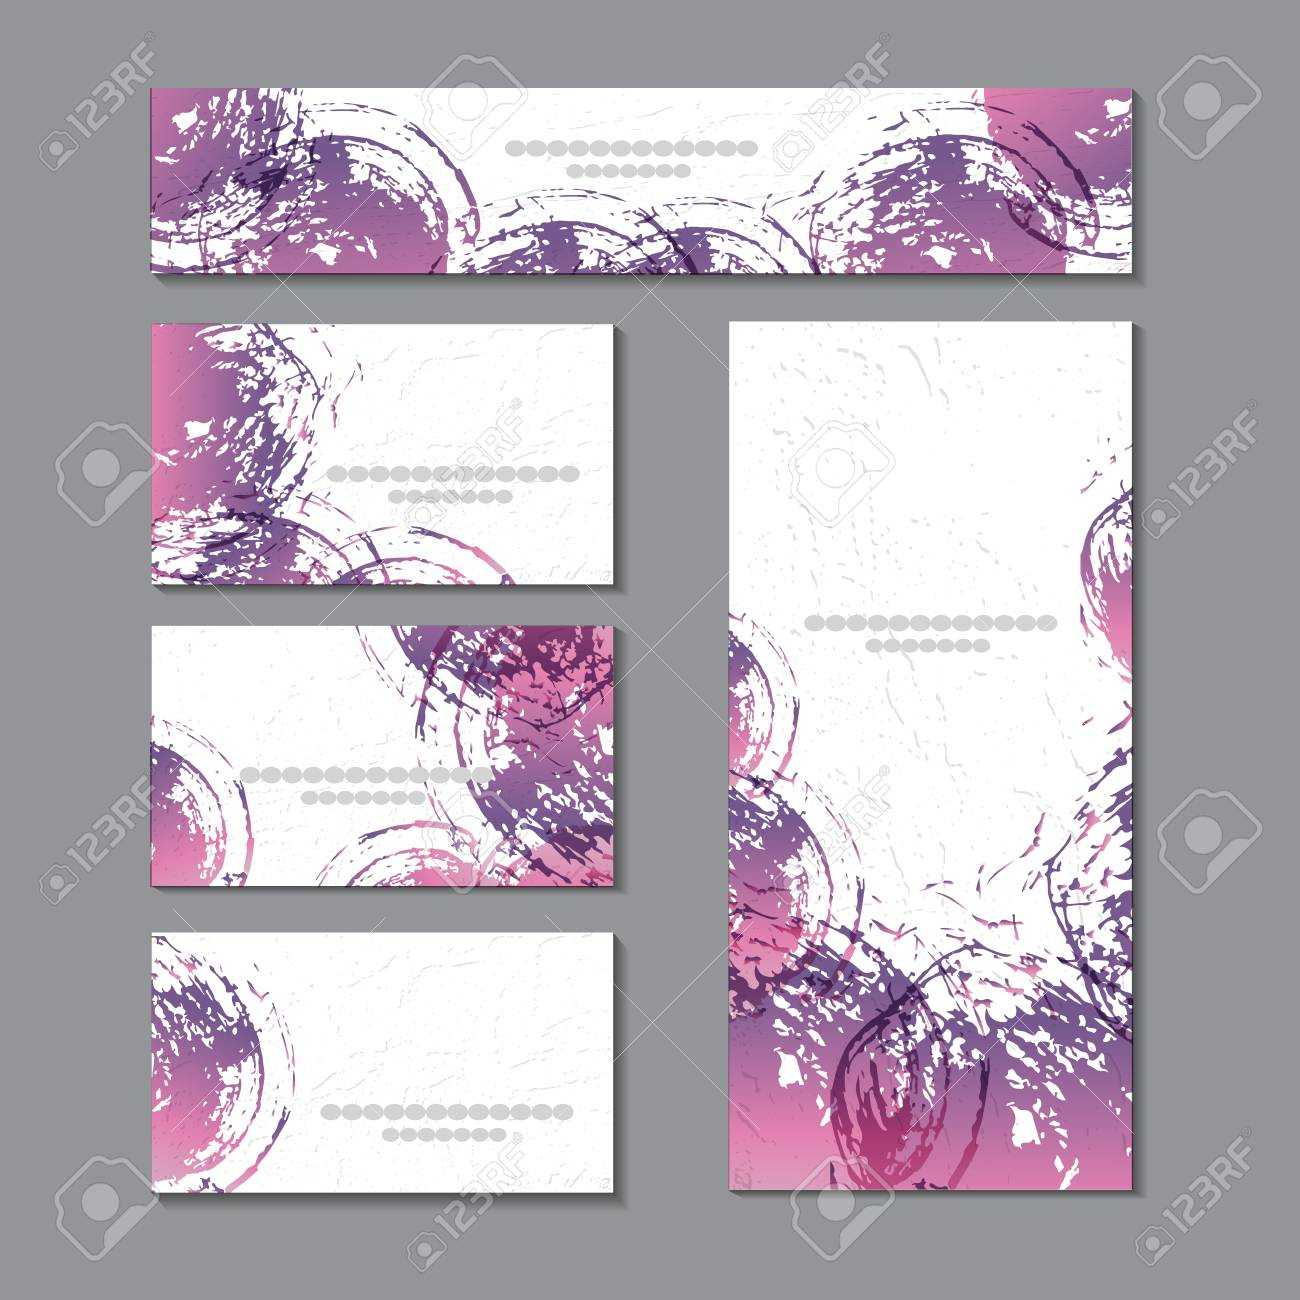 Cute Templates With Abstract Graphics.for Romance And Design,.. For Advertising Cards Templates